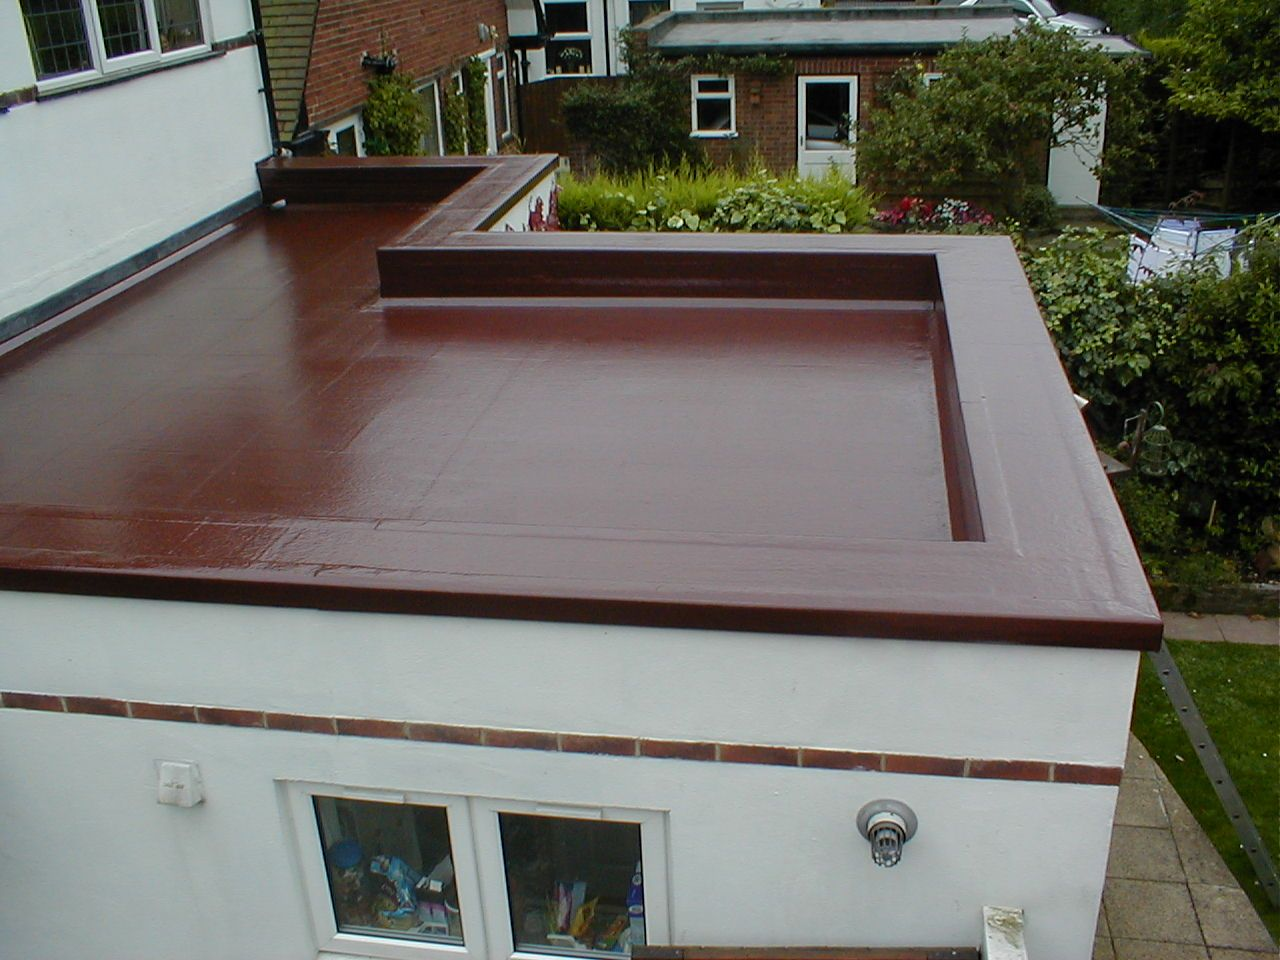 Flat roof design plastic roof tiles choosing the right for Flat tile roof